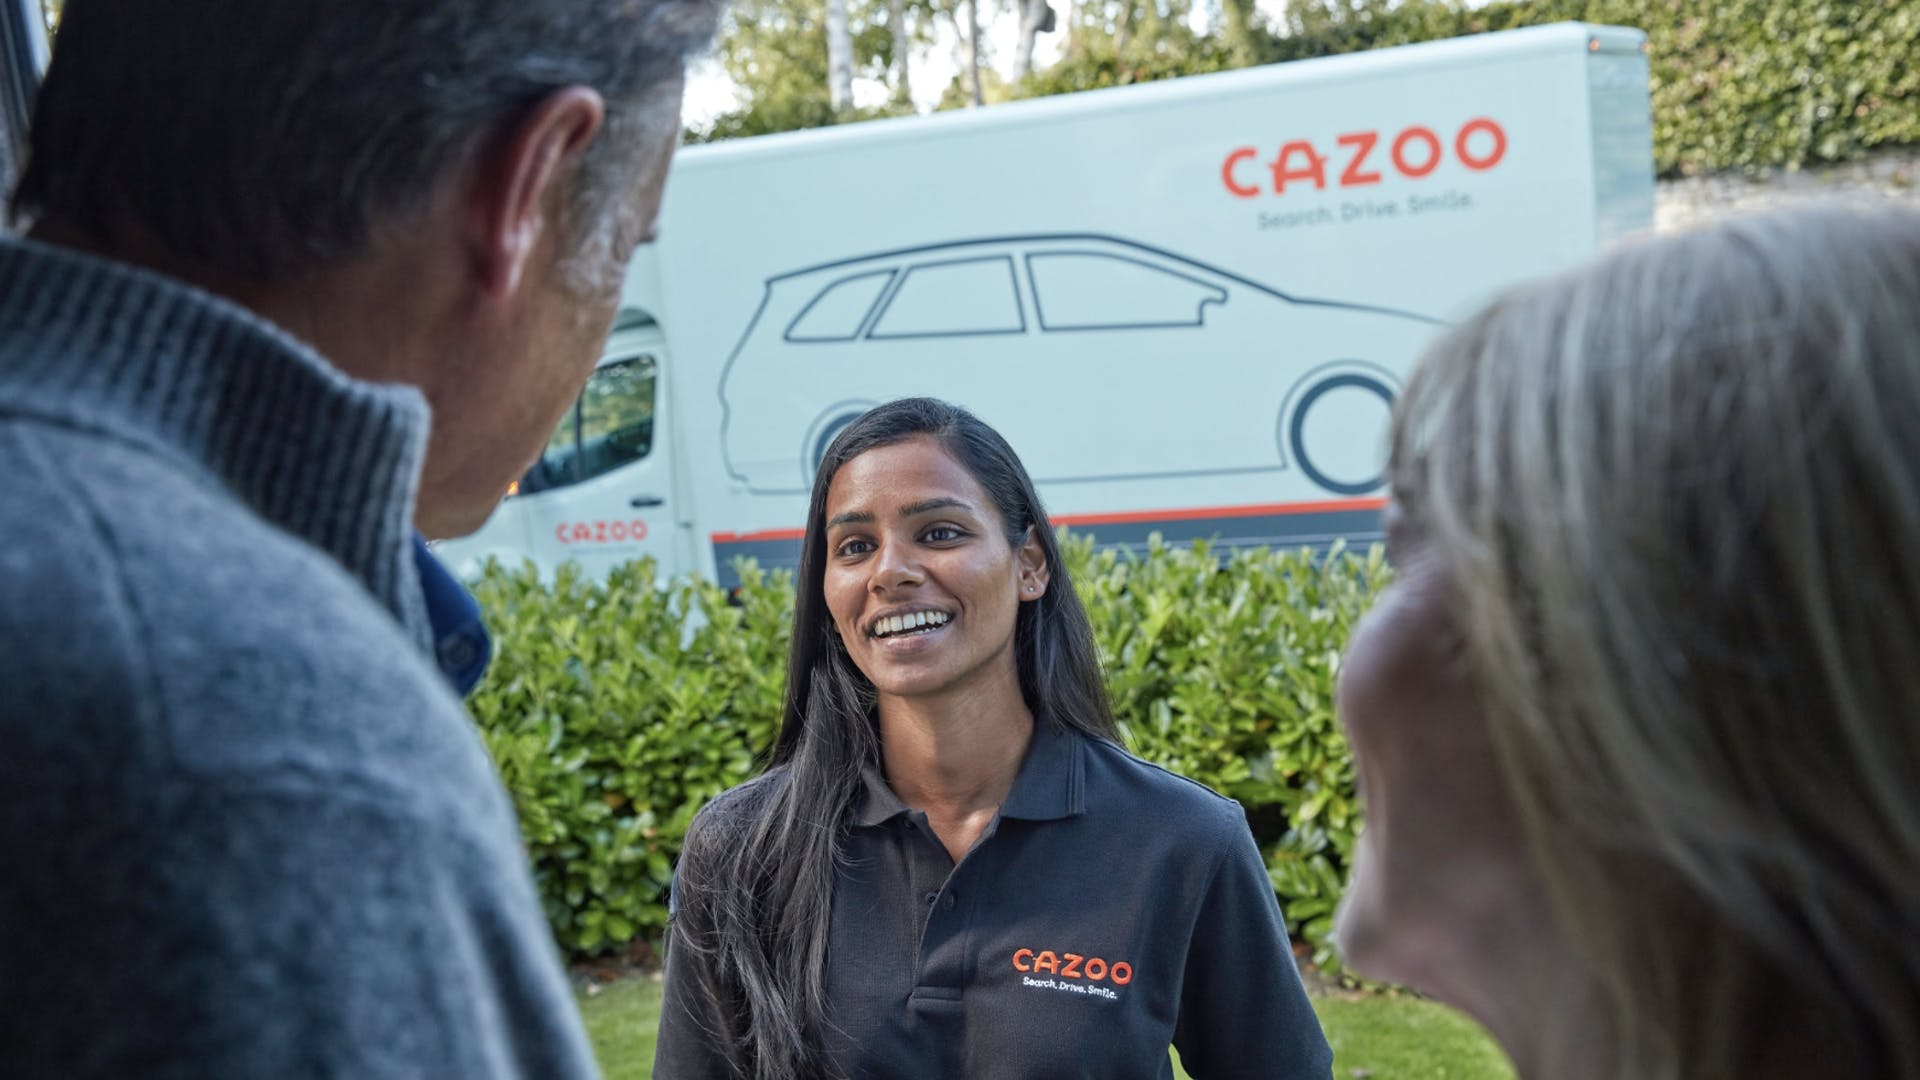 Cazoo delivery transporter delivering a car